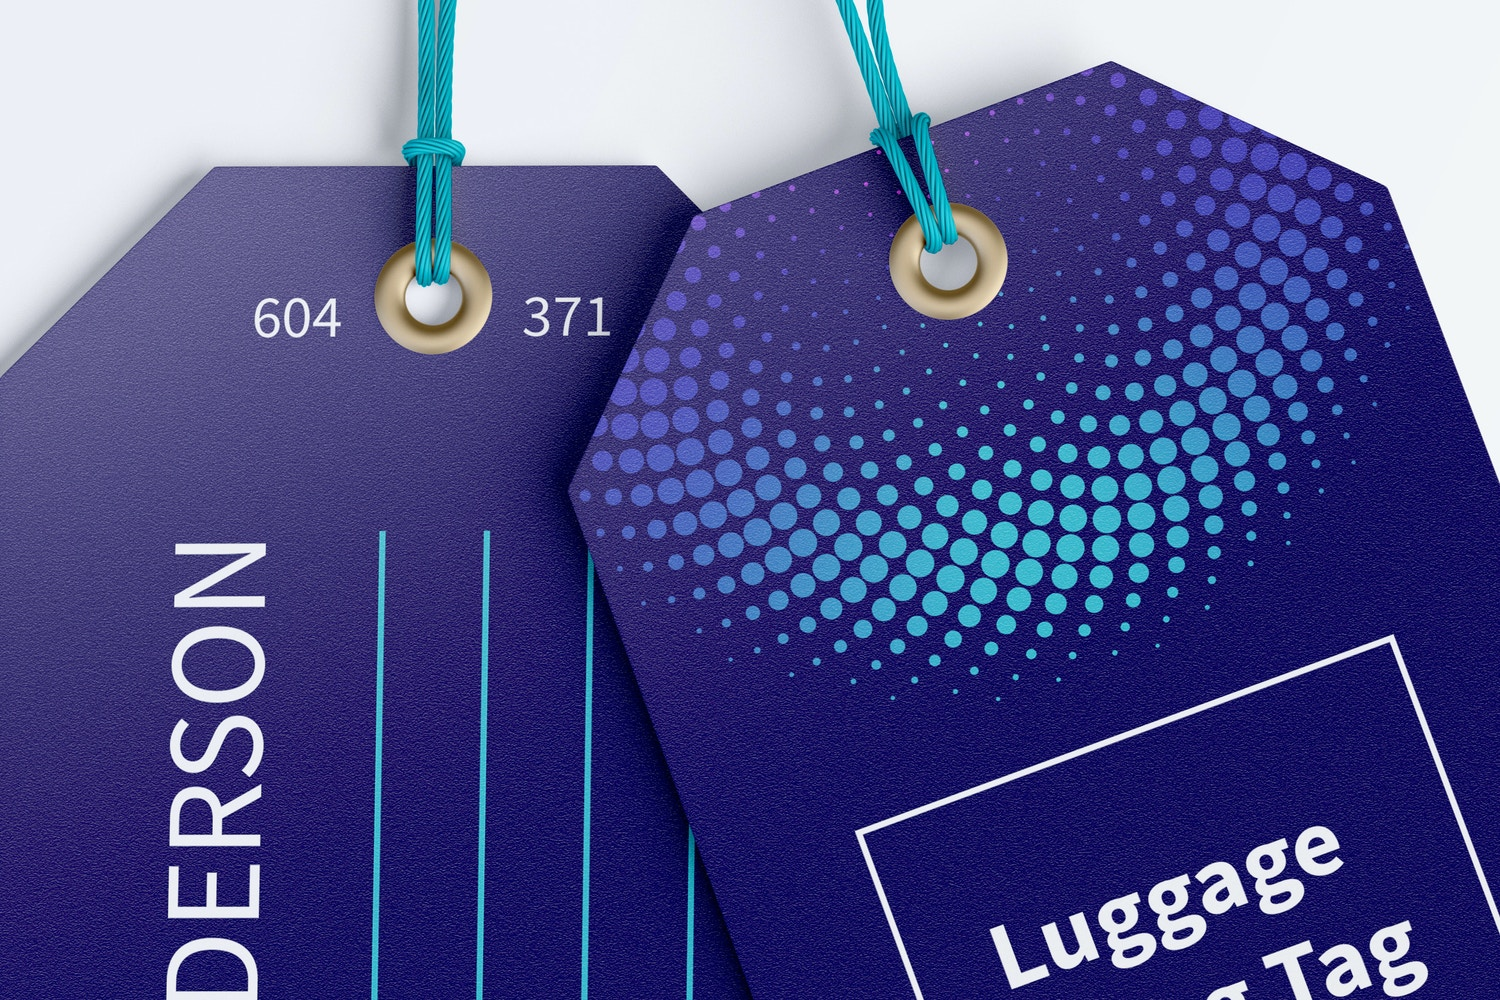 Luggage Hang Tags Mockup with String, Two-sided